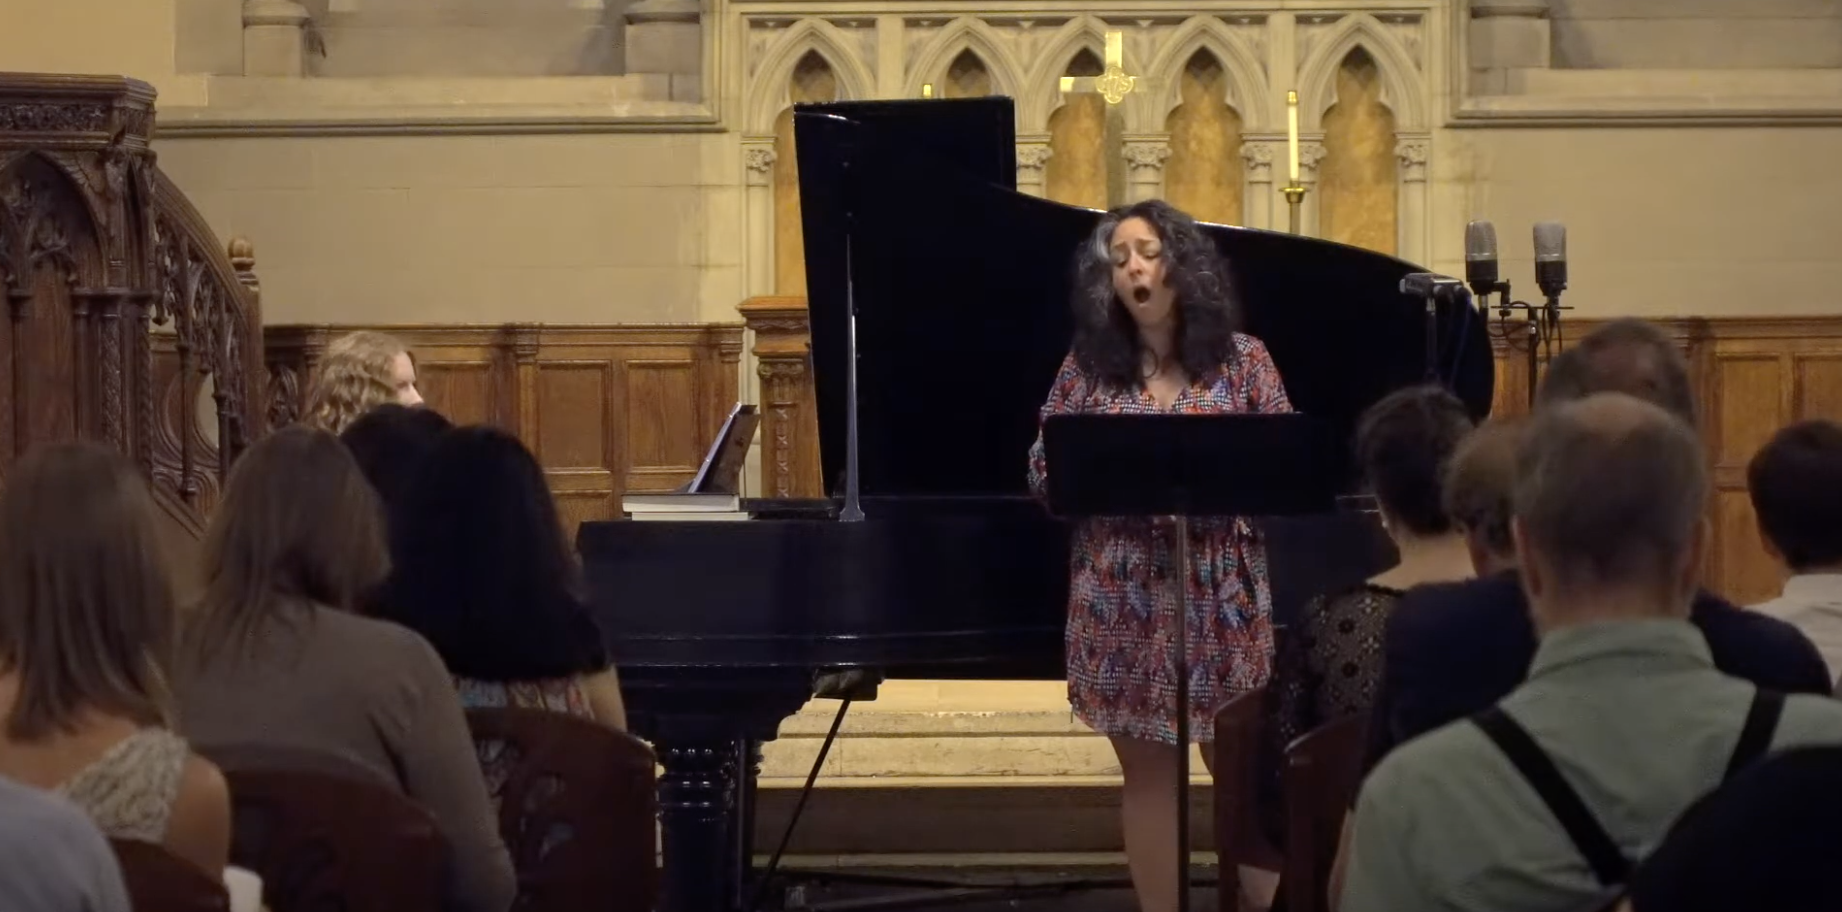 Deus ex Musica concert exploring the Psalms, Old South Church - Boston, 2019